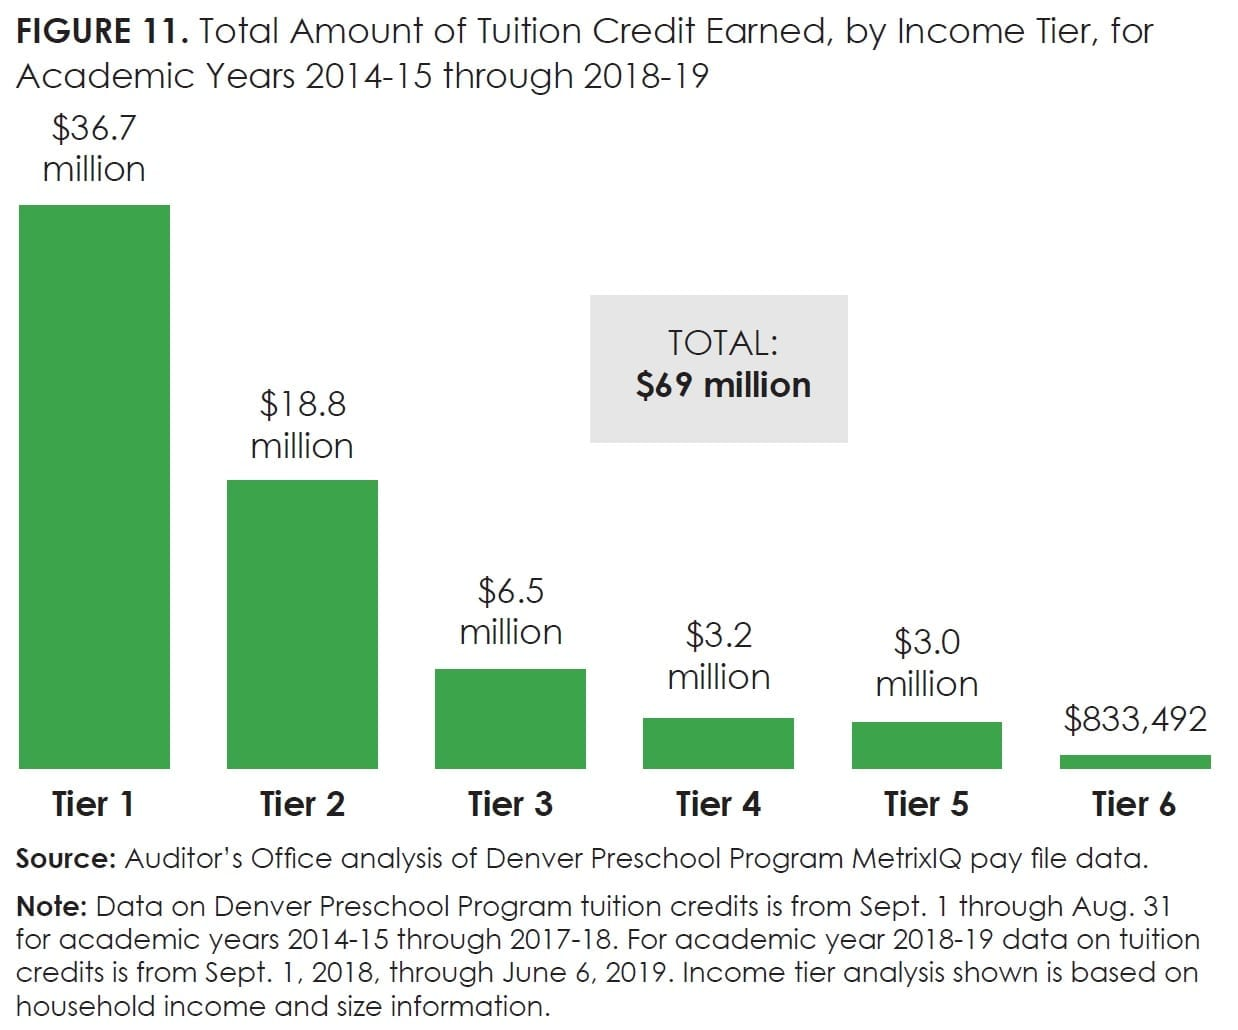 Figure11_Total Amount of Tuition Credit Earned, by Income Tier, for Academic Years 2014-15 through 2018-19